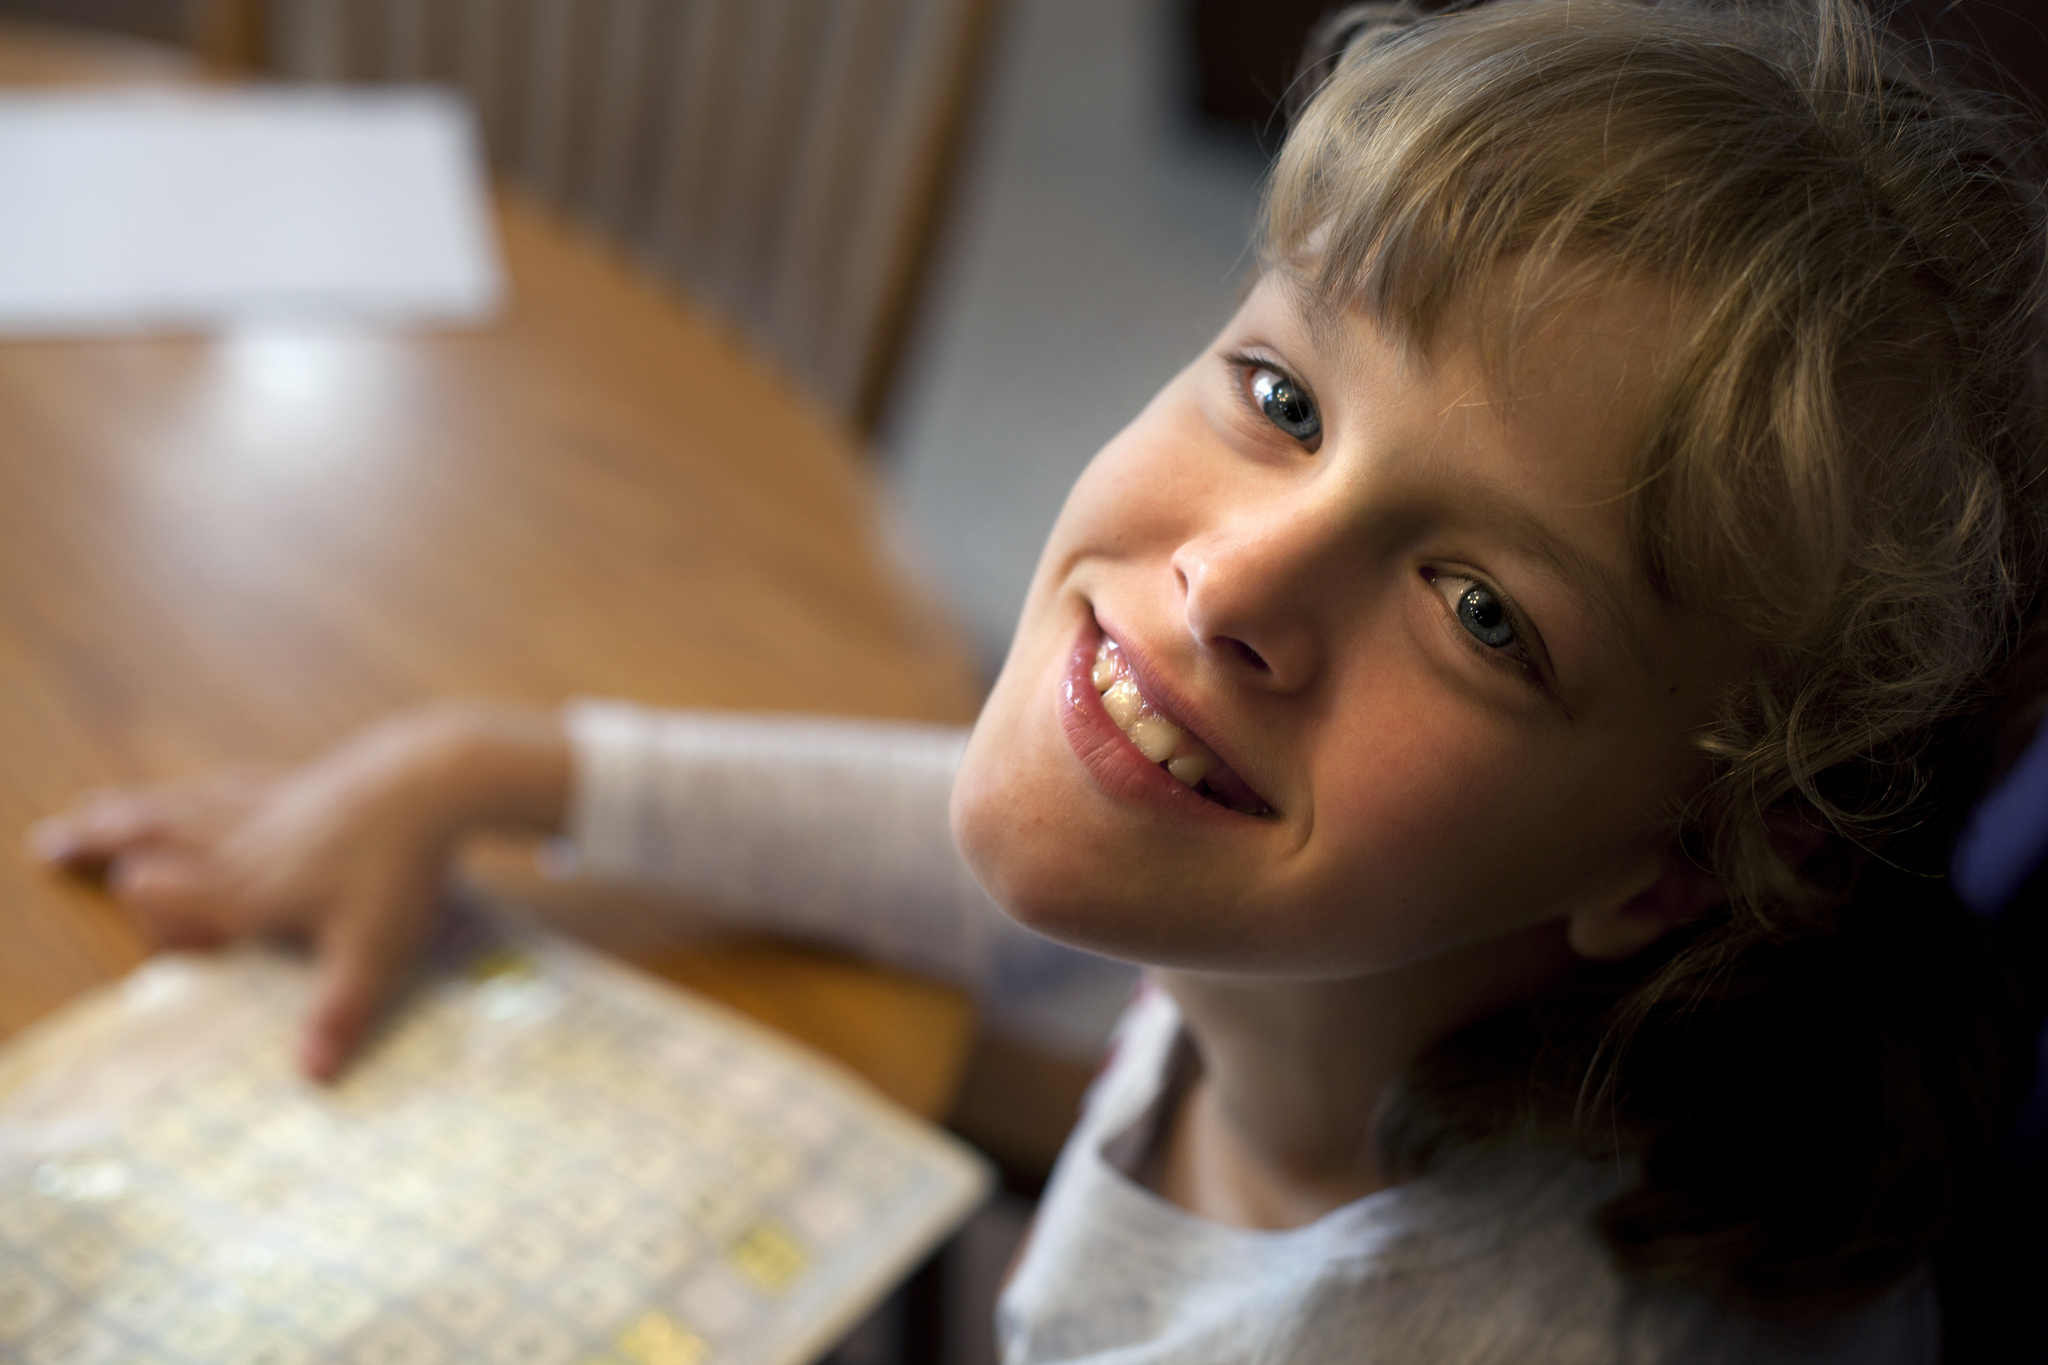 Sitting by the dining table in her parents' Westphalia, MI house, Grace smiles to the photographer. Her hand rests on a board with letters and numbers she uses to communicate. Image credit: Marcin Szczepanski